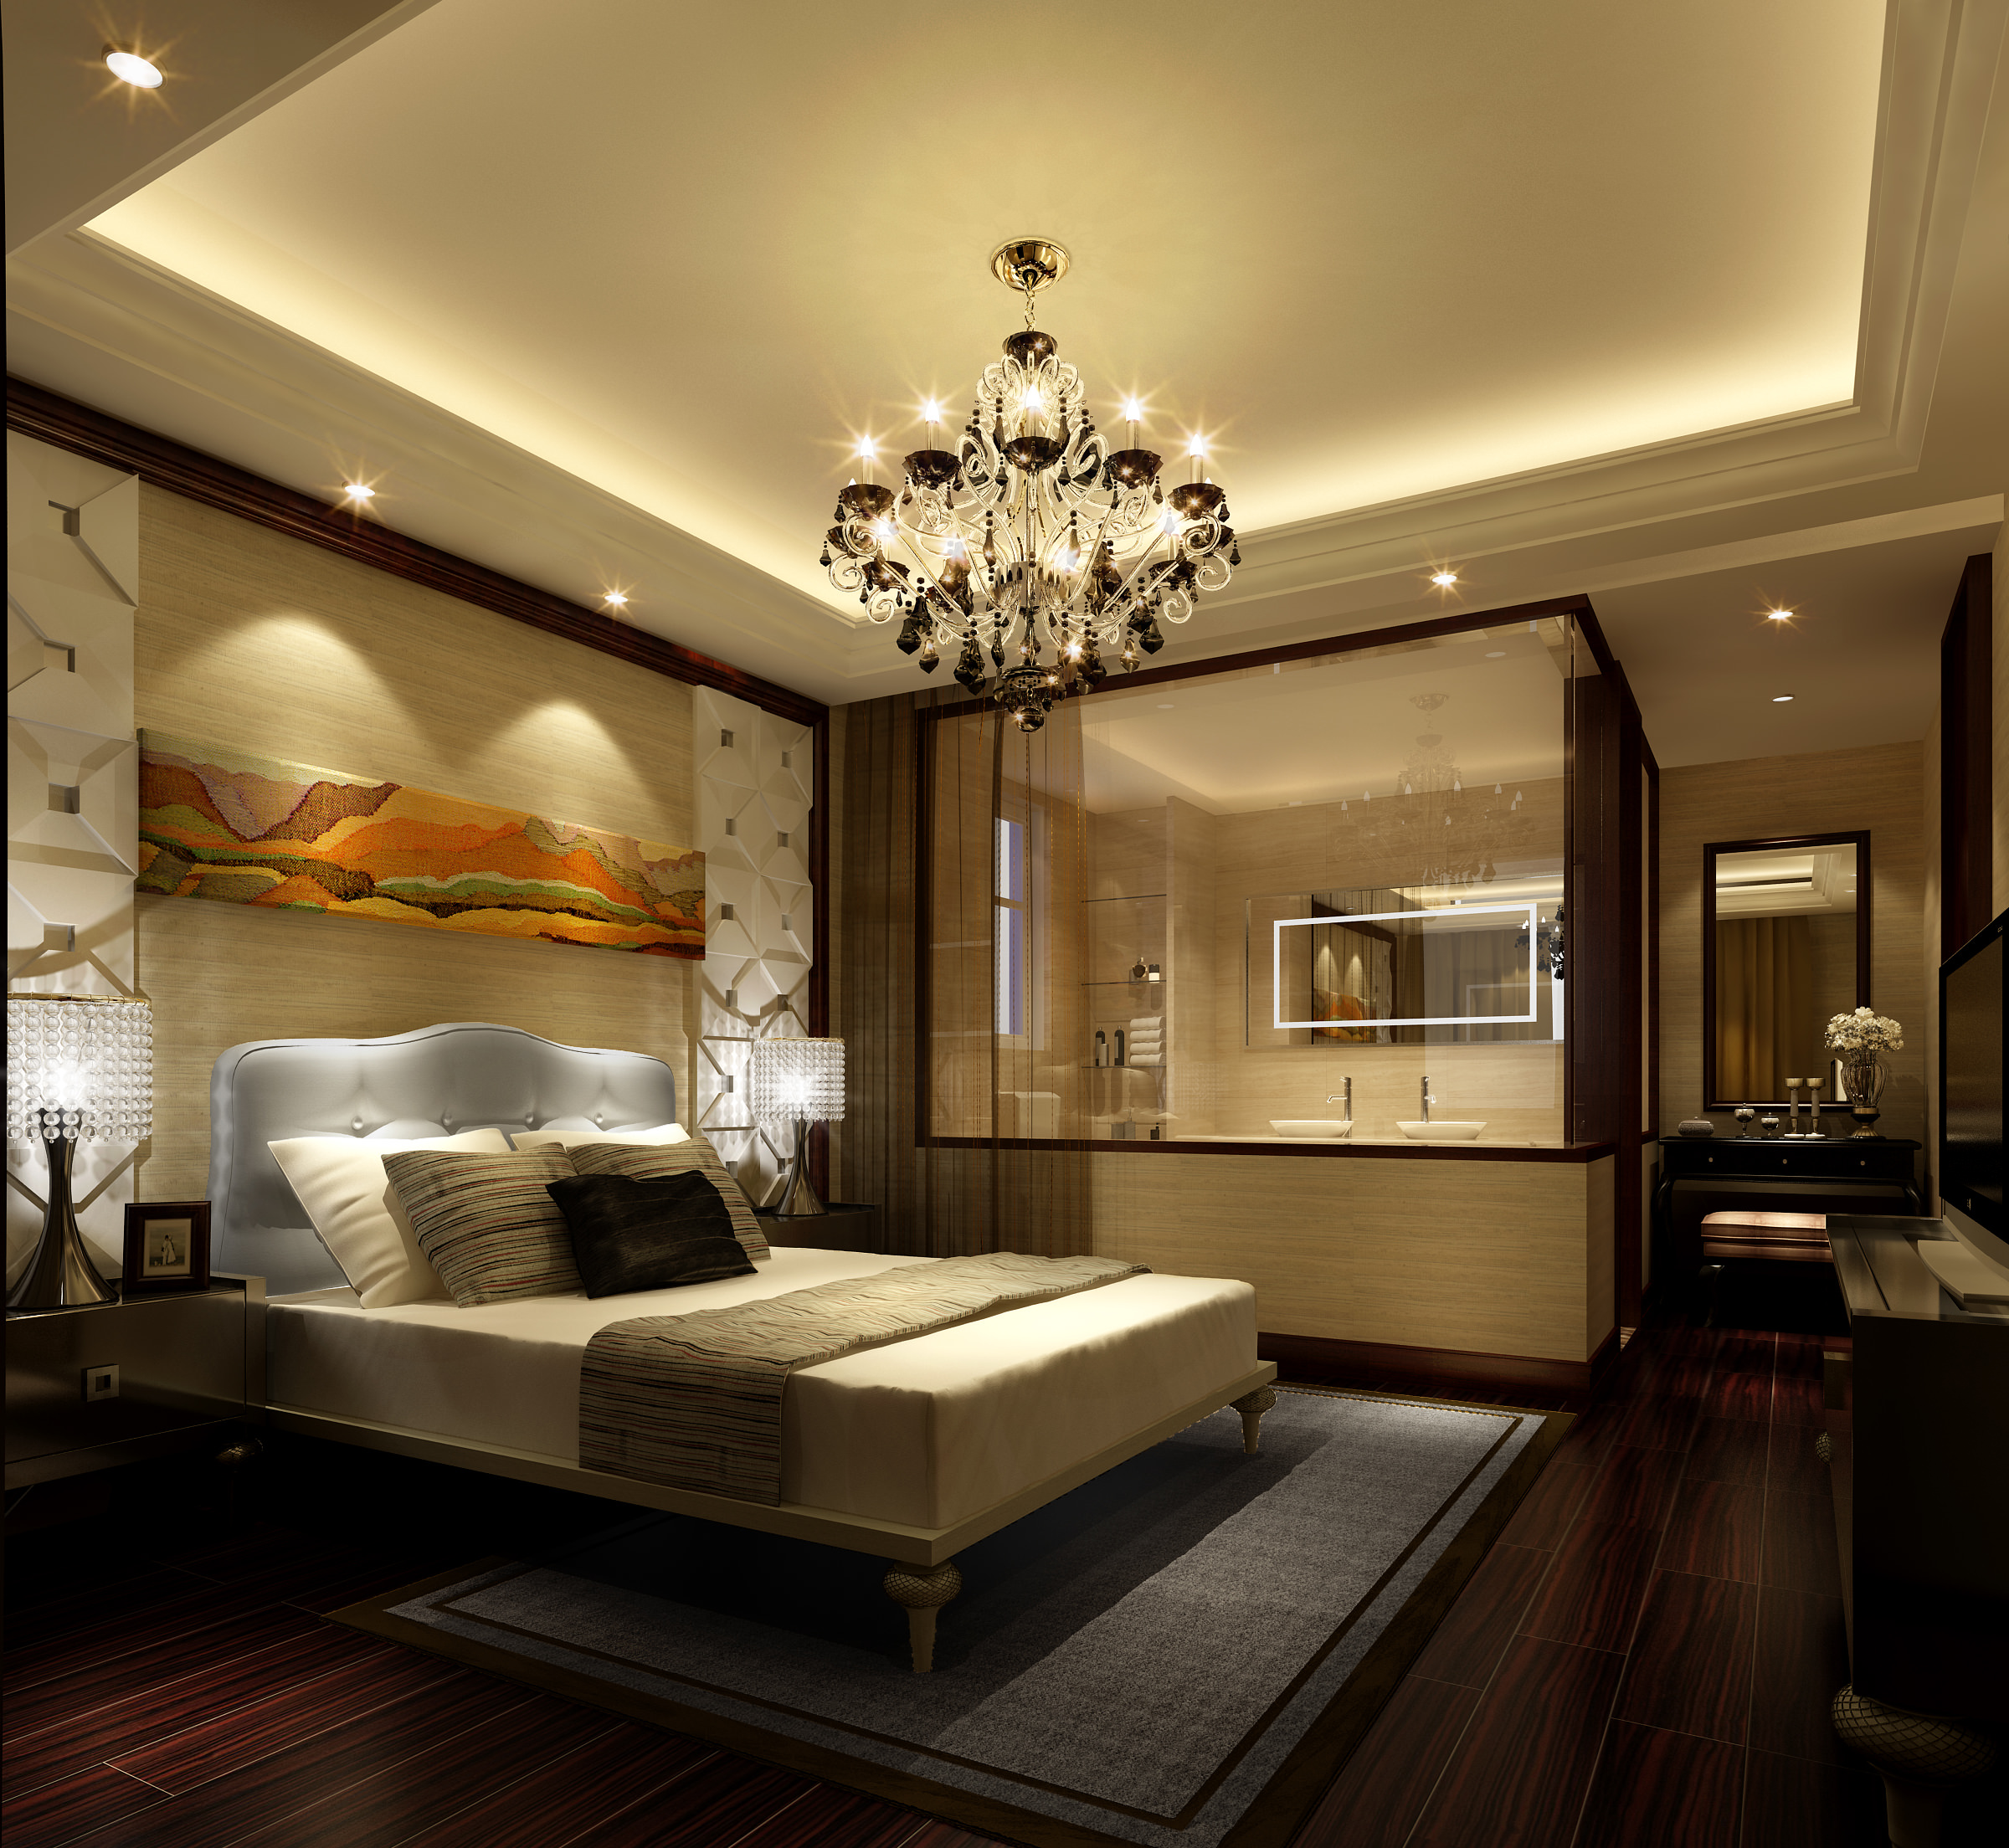 Model Bedroom Fair 3D Bedroom With Bathroom Luxury  Cgtrader 2017